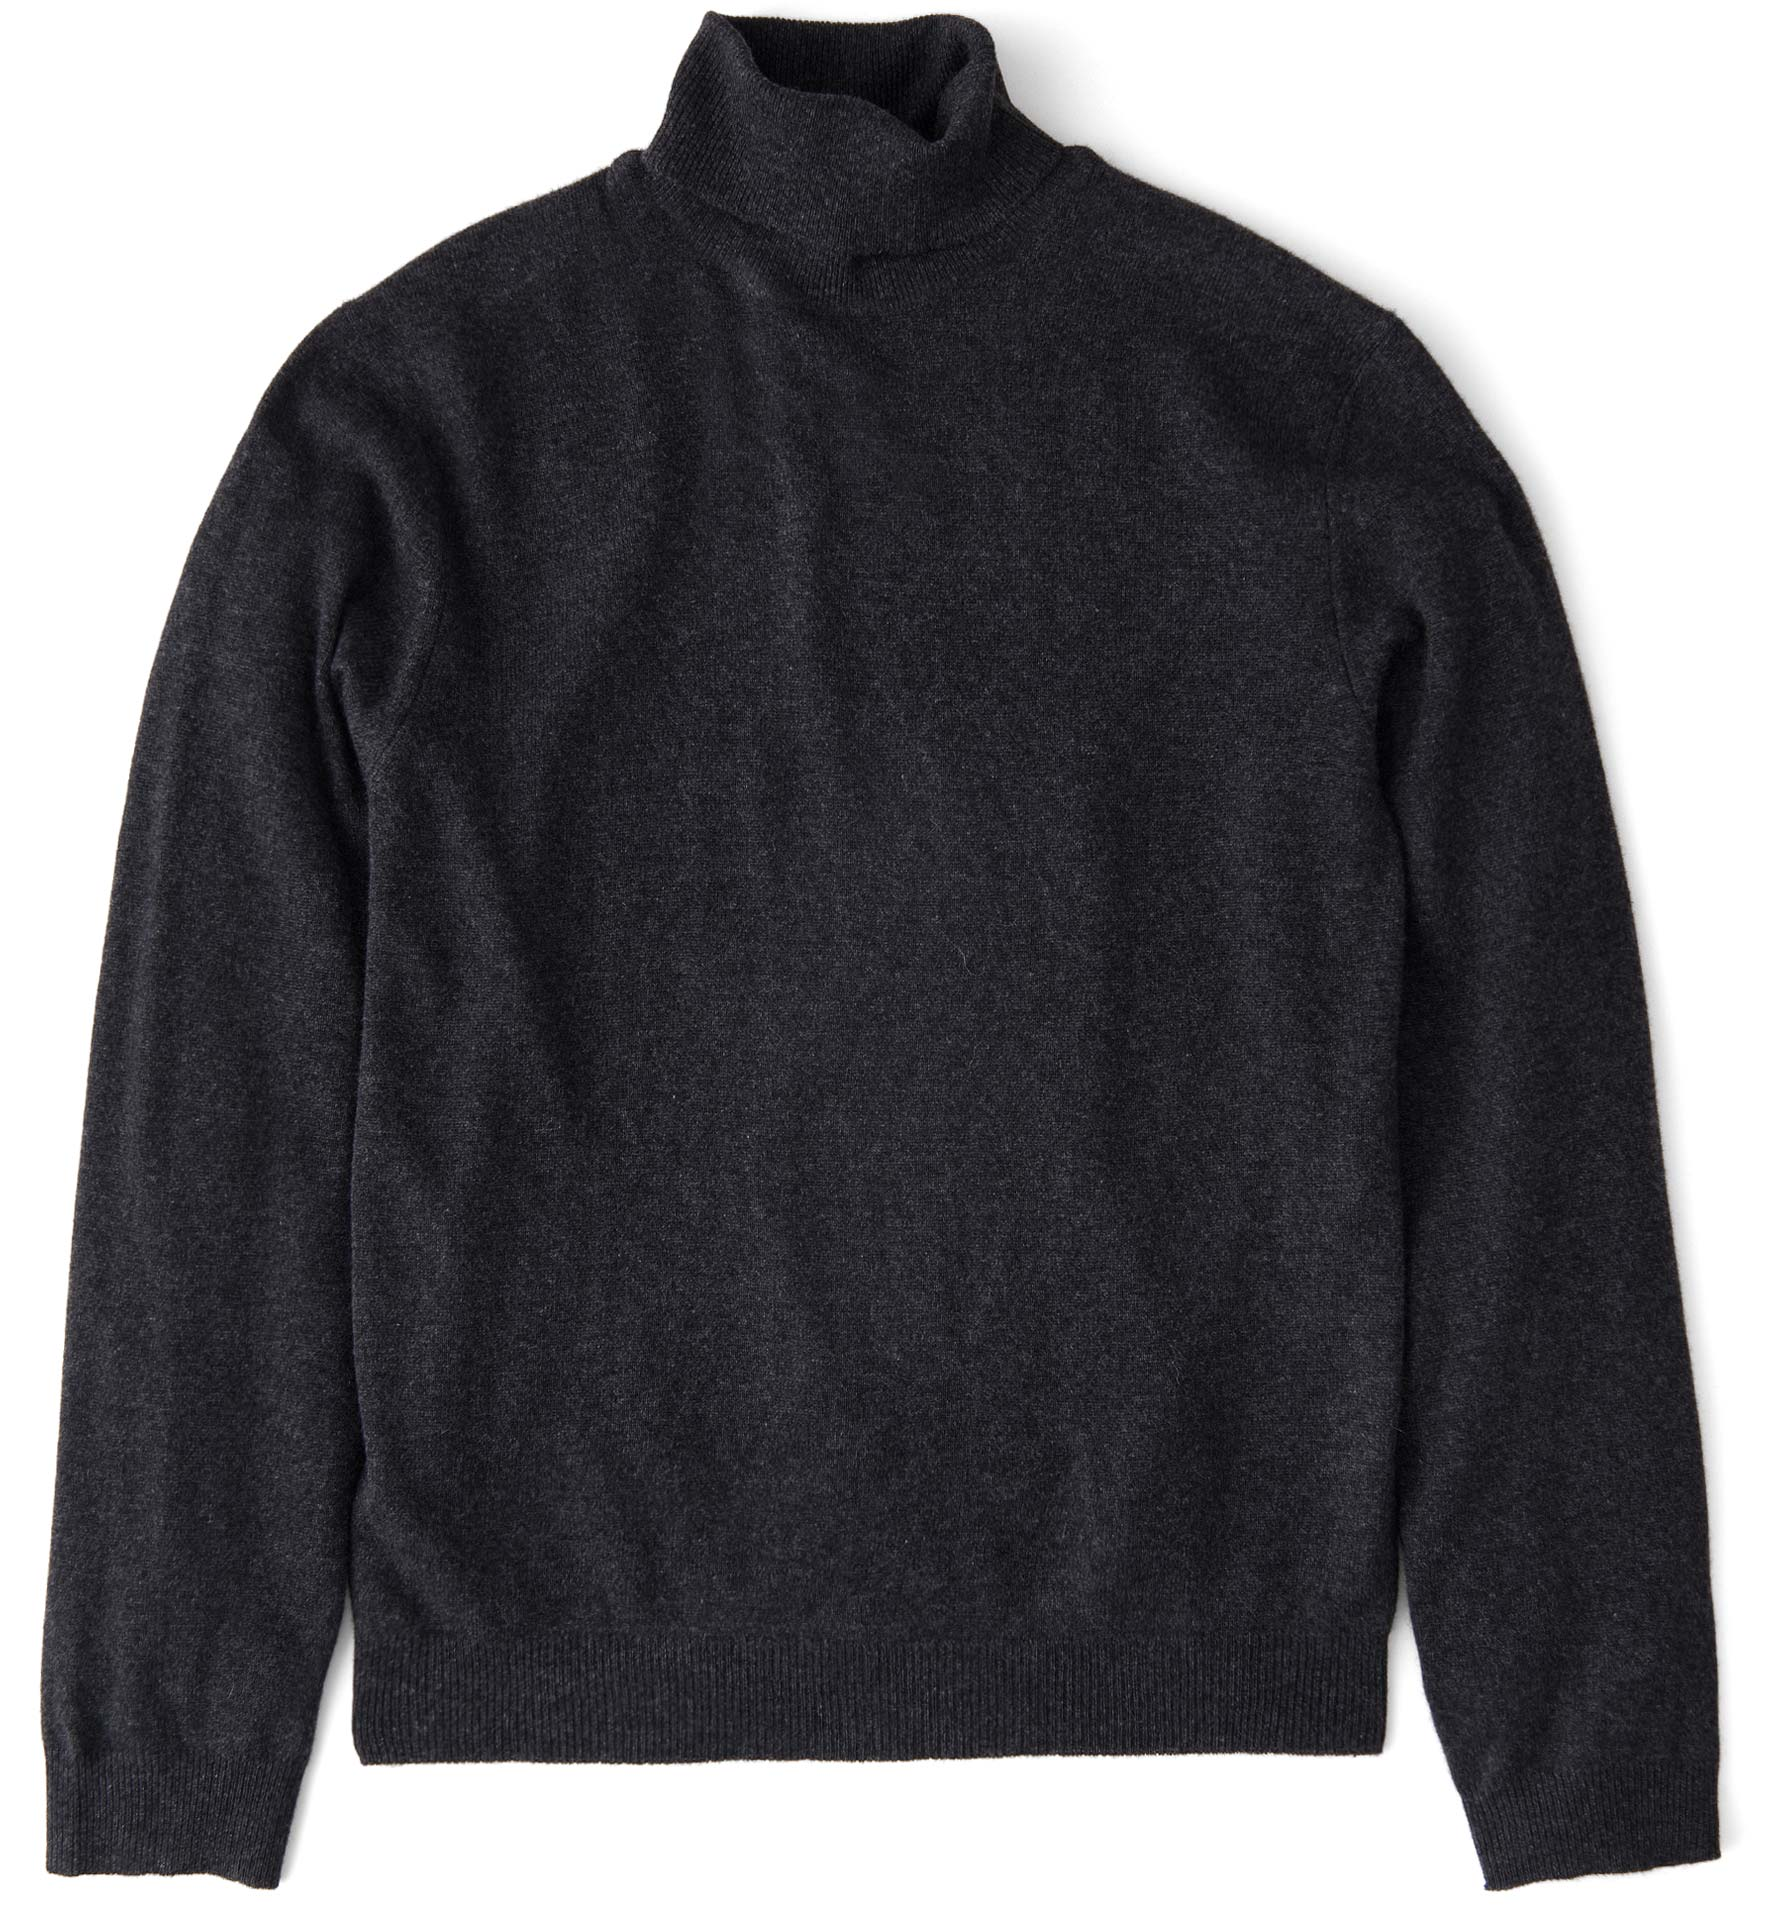 Zoom Image of Charcoal Cashmere Turtleneck Sweater